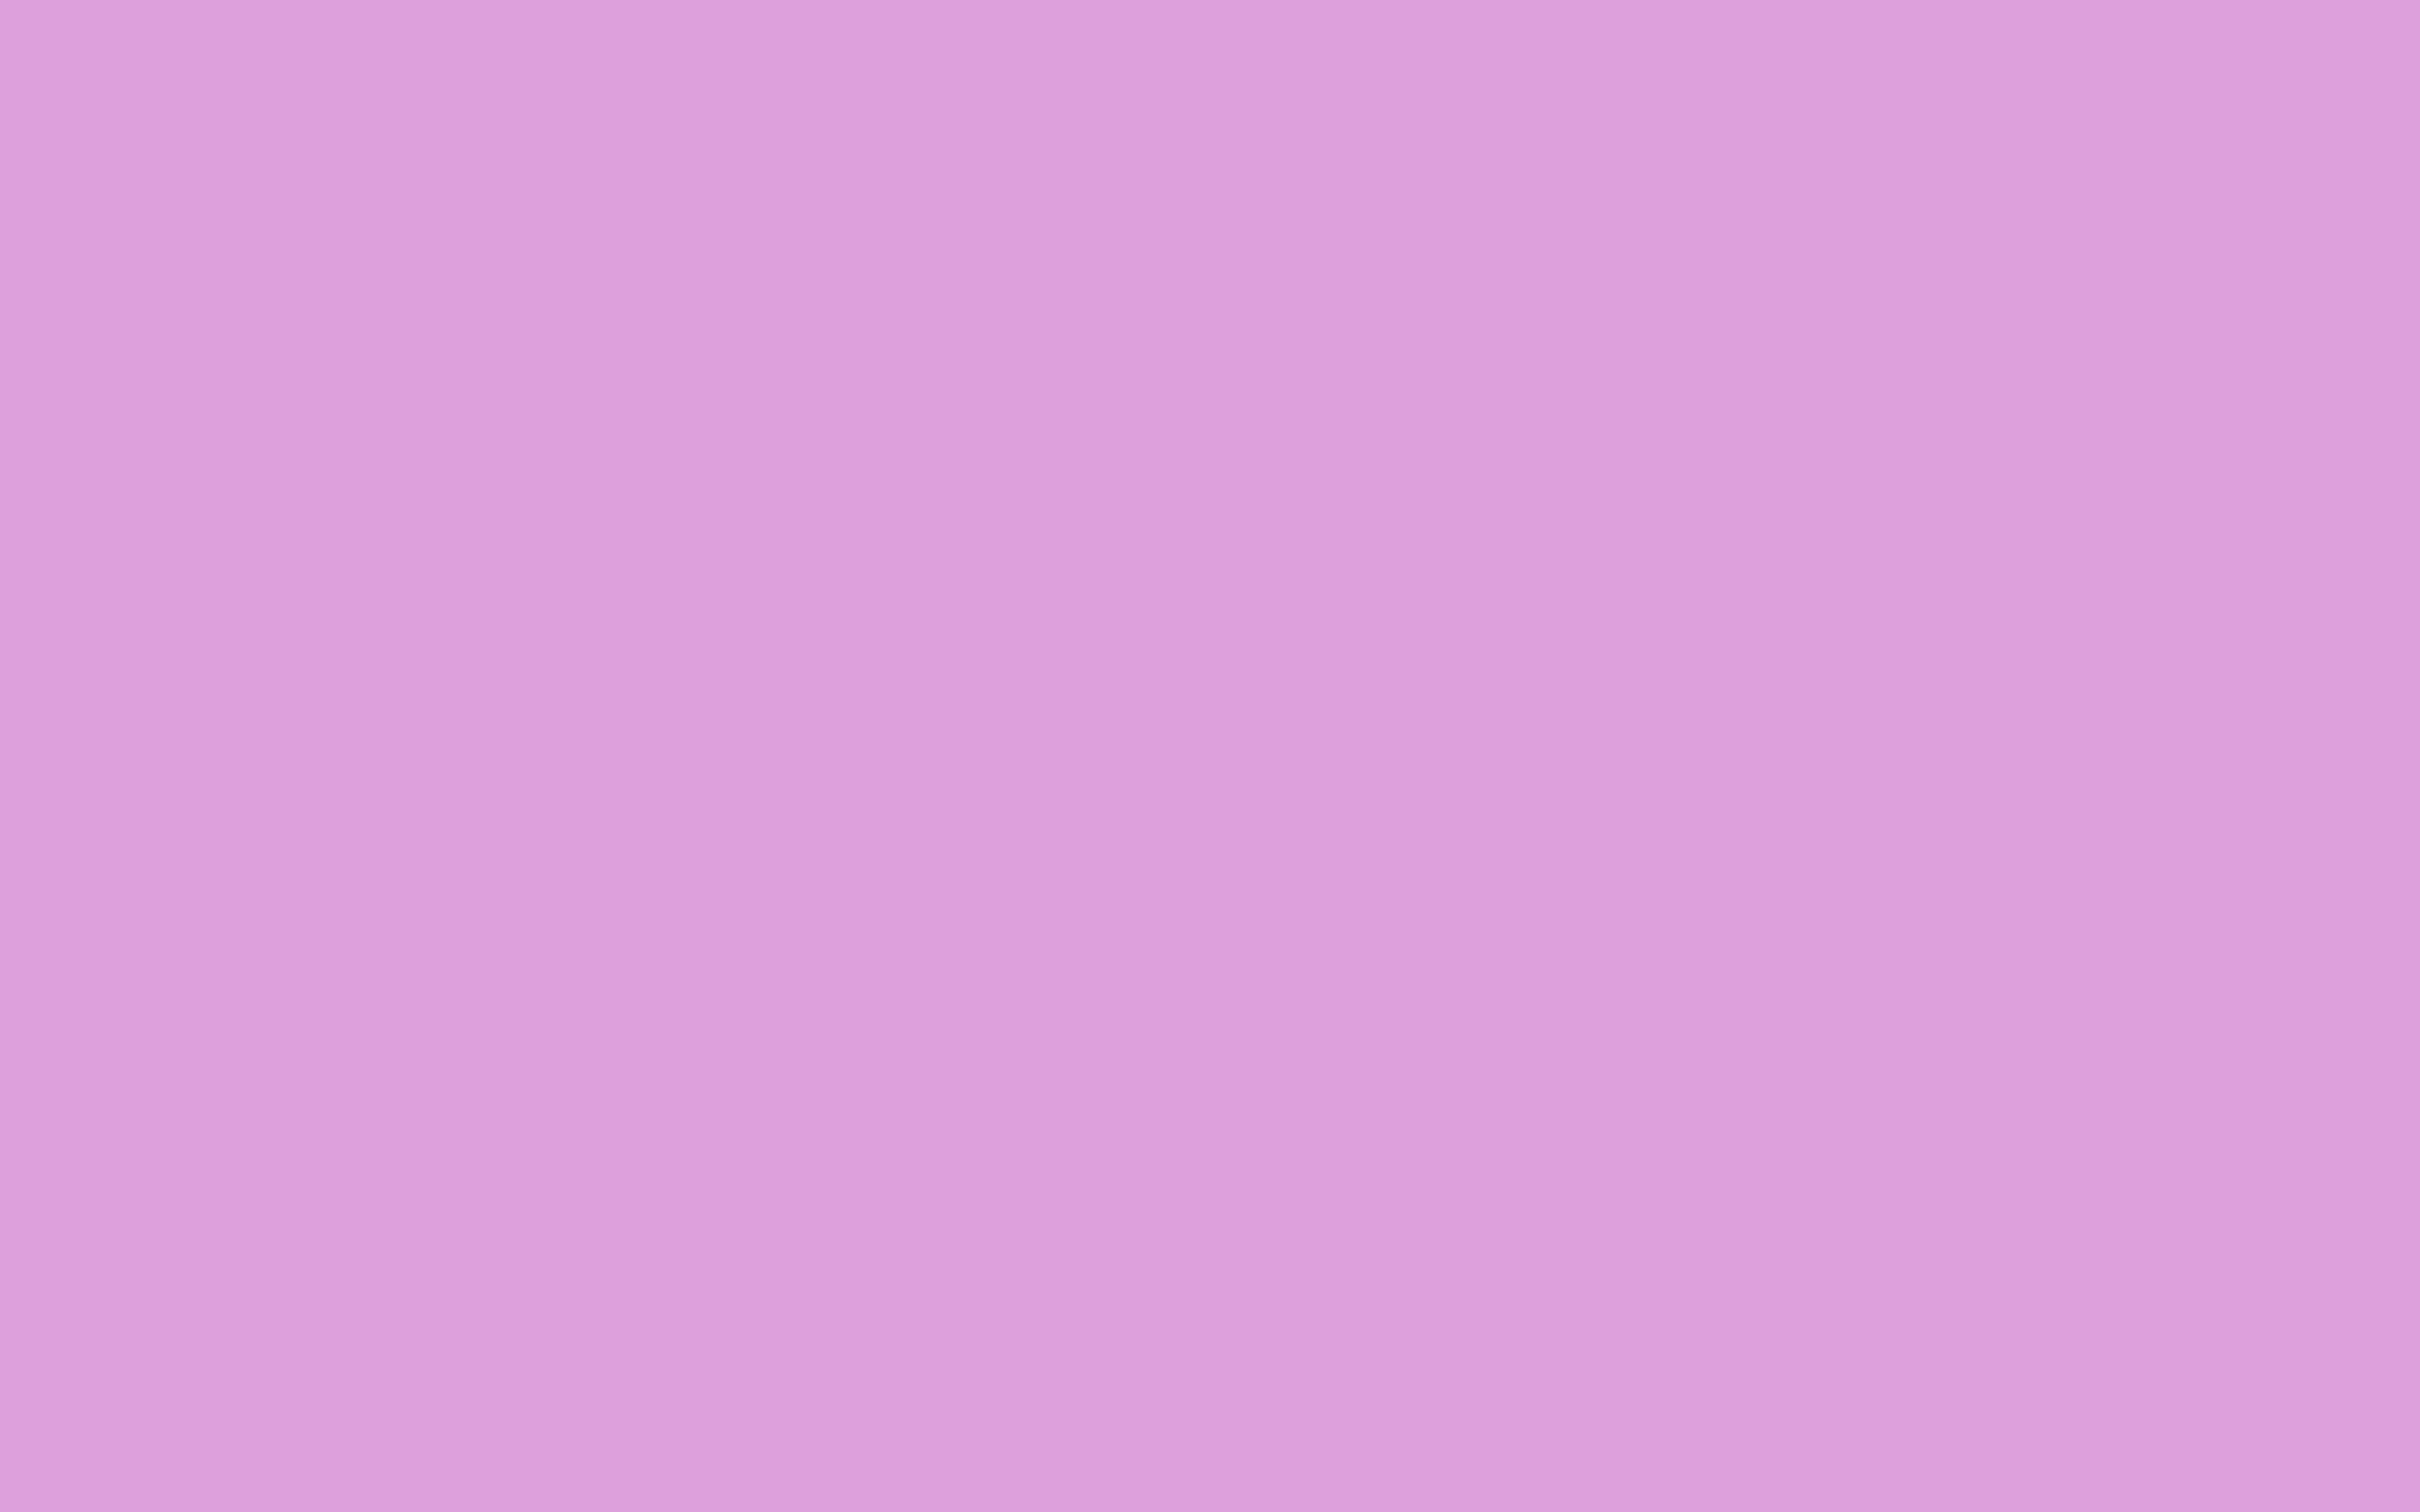 2880x1800 Medium Lavender Magenta Solid Color Background